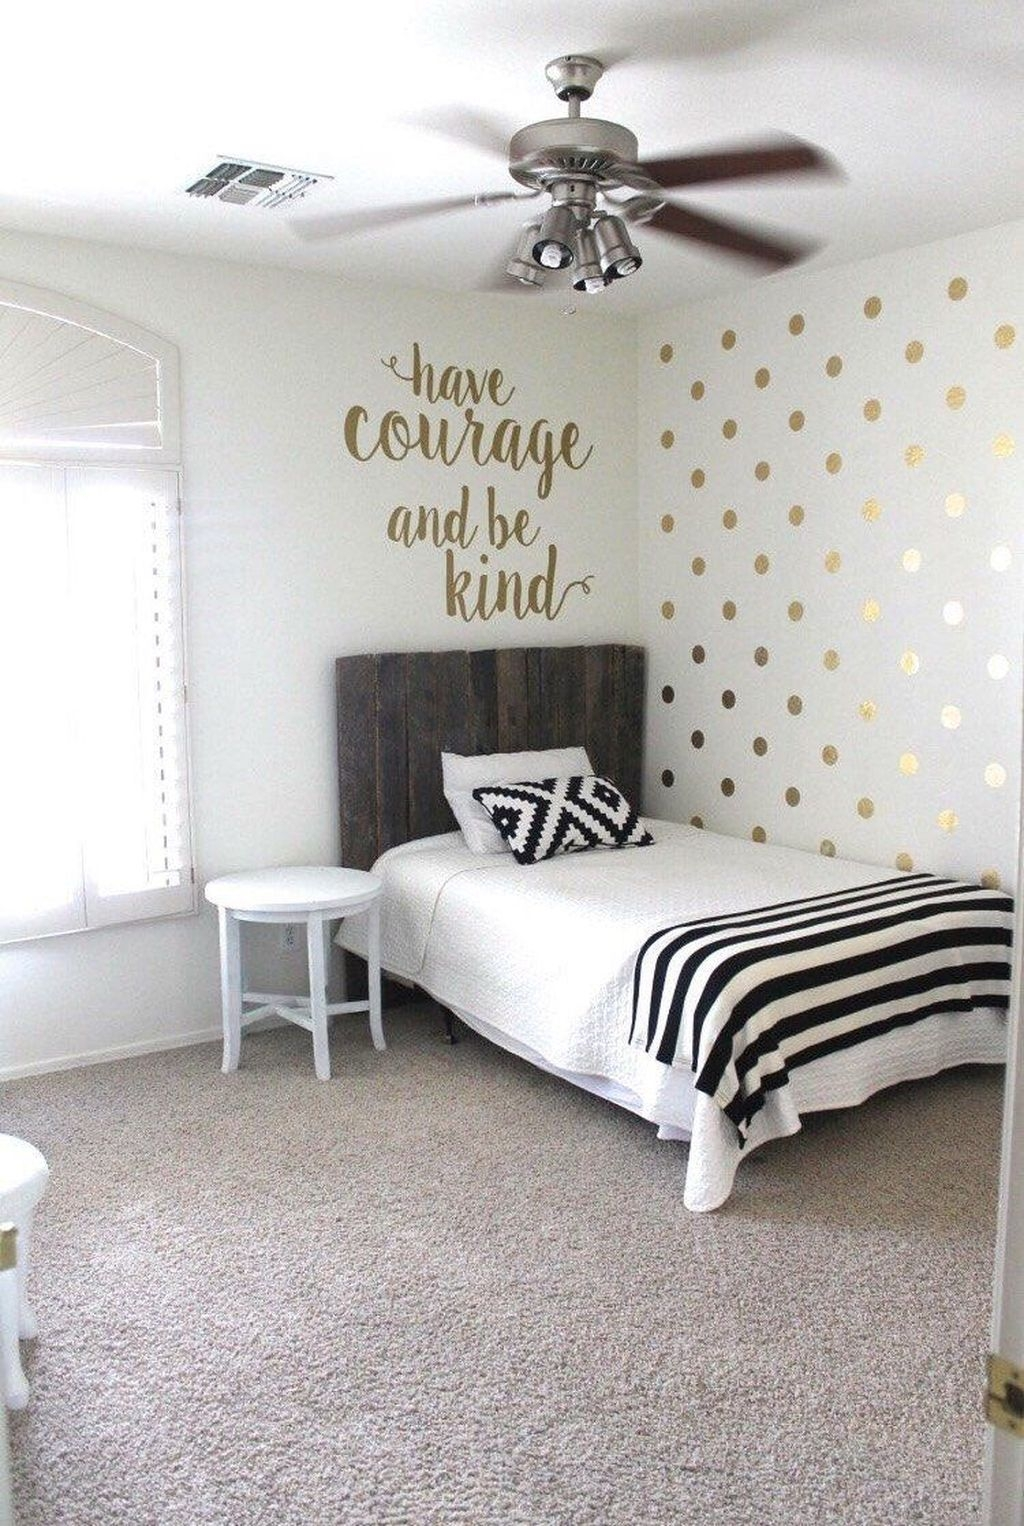 Vintage Bedroom Wall Decals Design Ideas To Try09